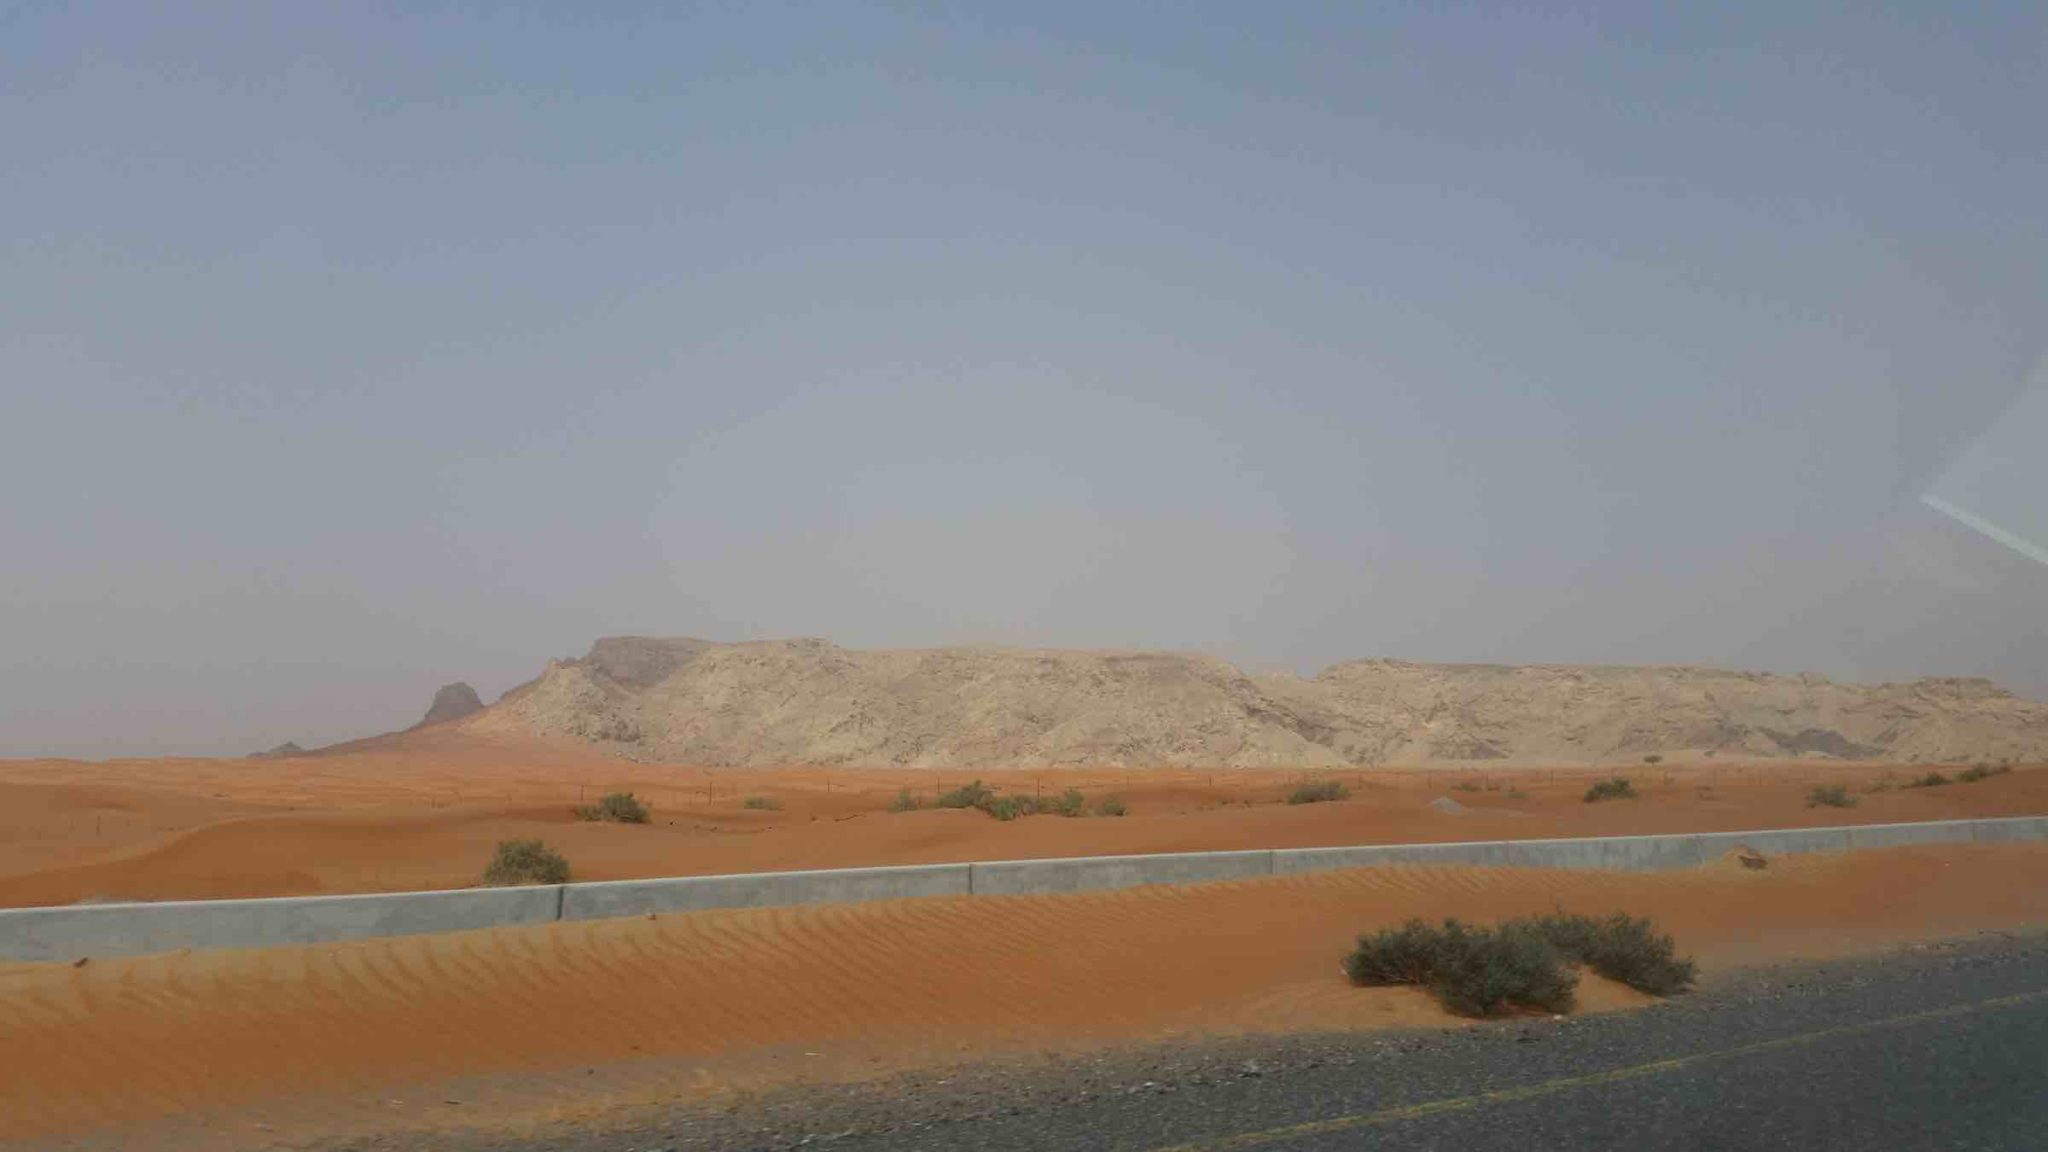 wind-erosion-causes-types-factors-grt